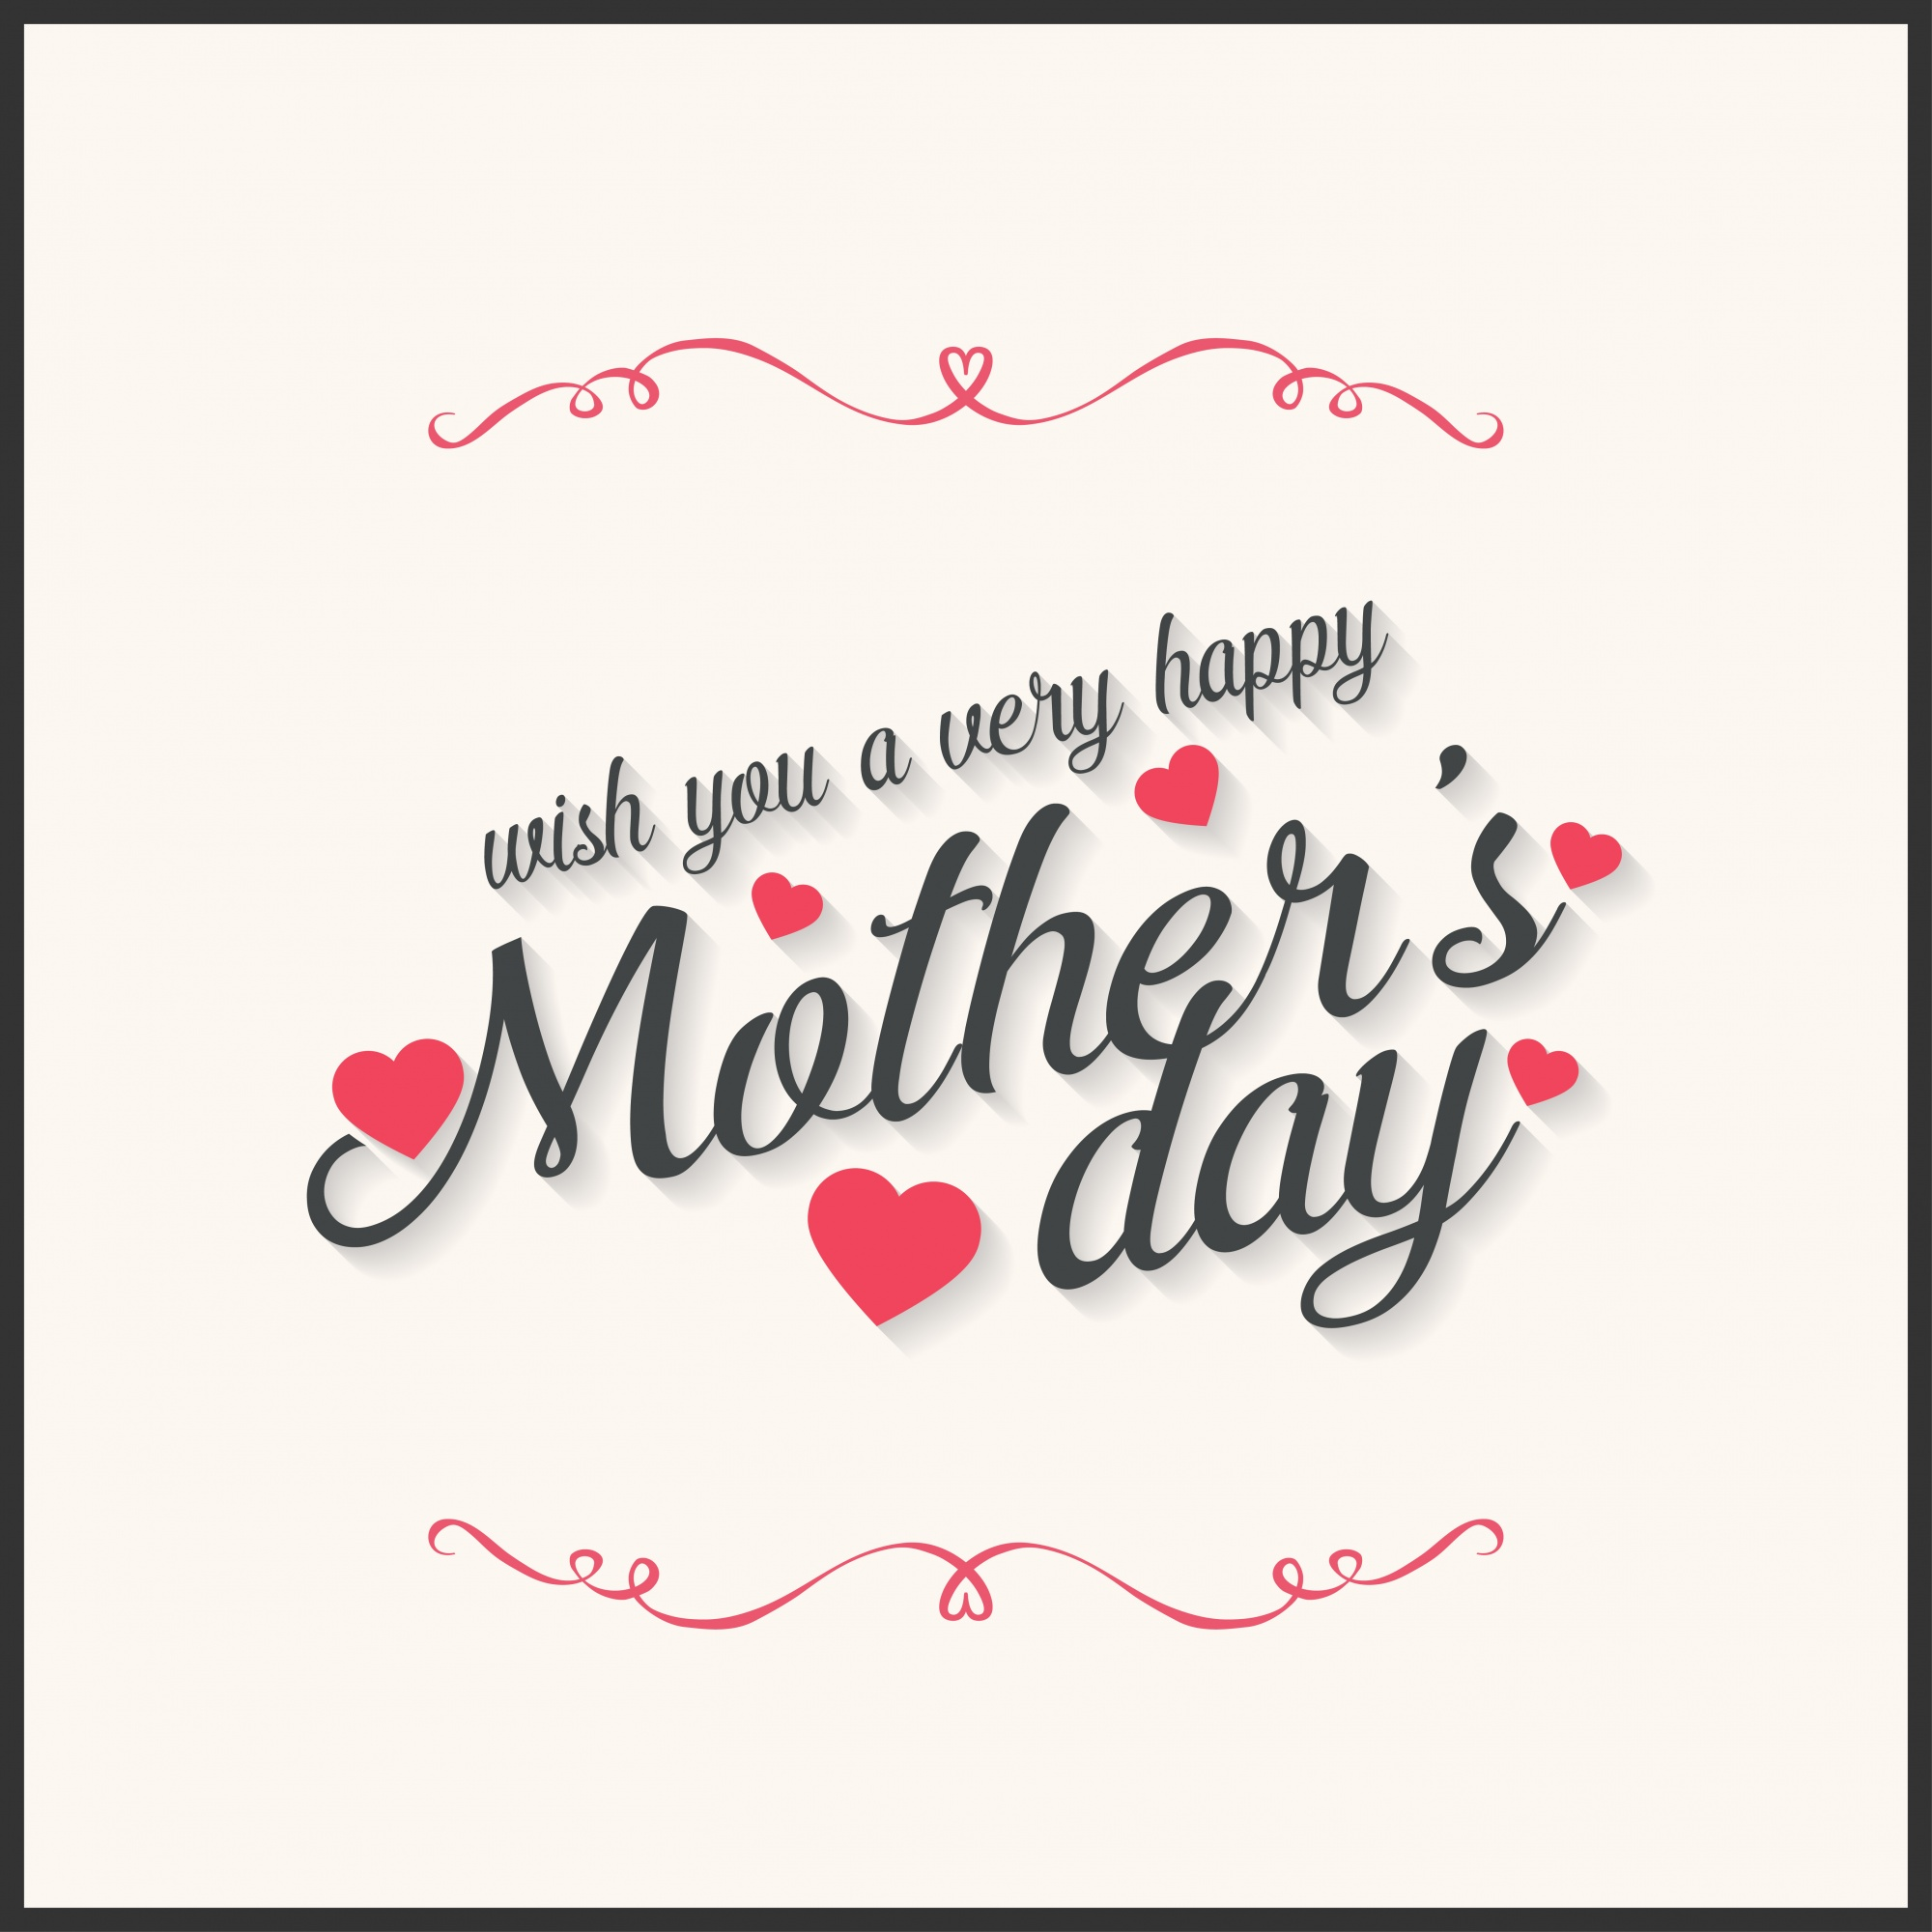 Mothers day card with ornaments and text